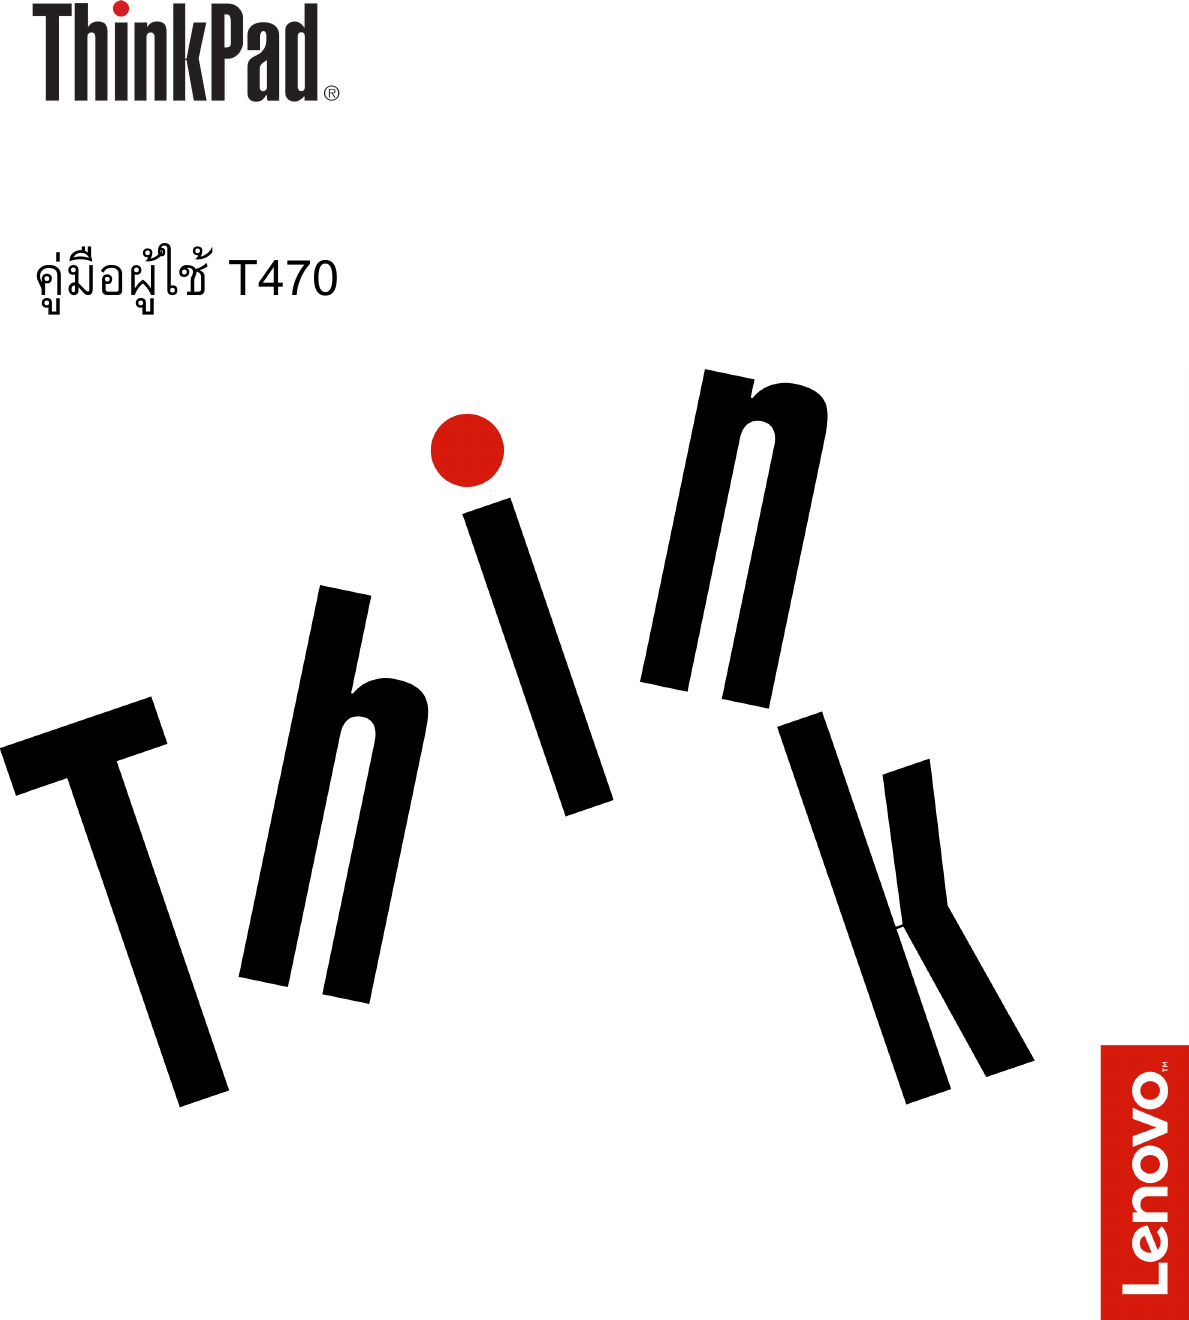 Lenovo T470 Ug Th User Manual (Thai) Guide Think Pad